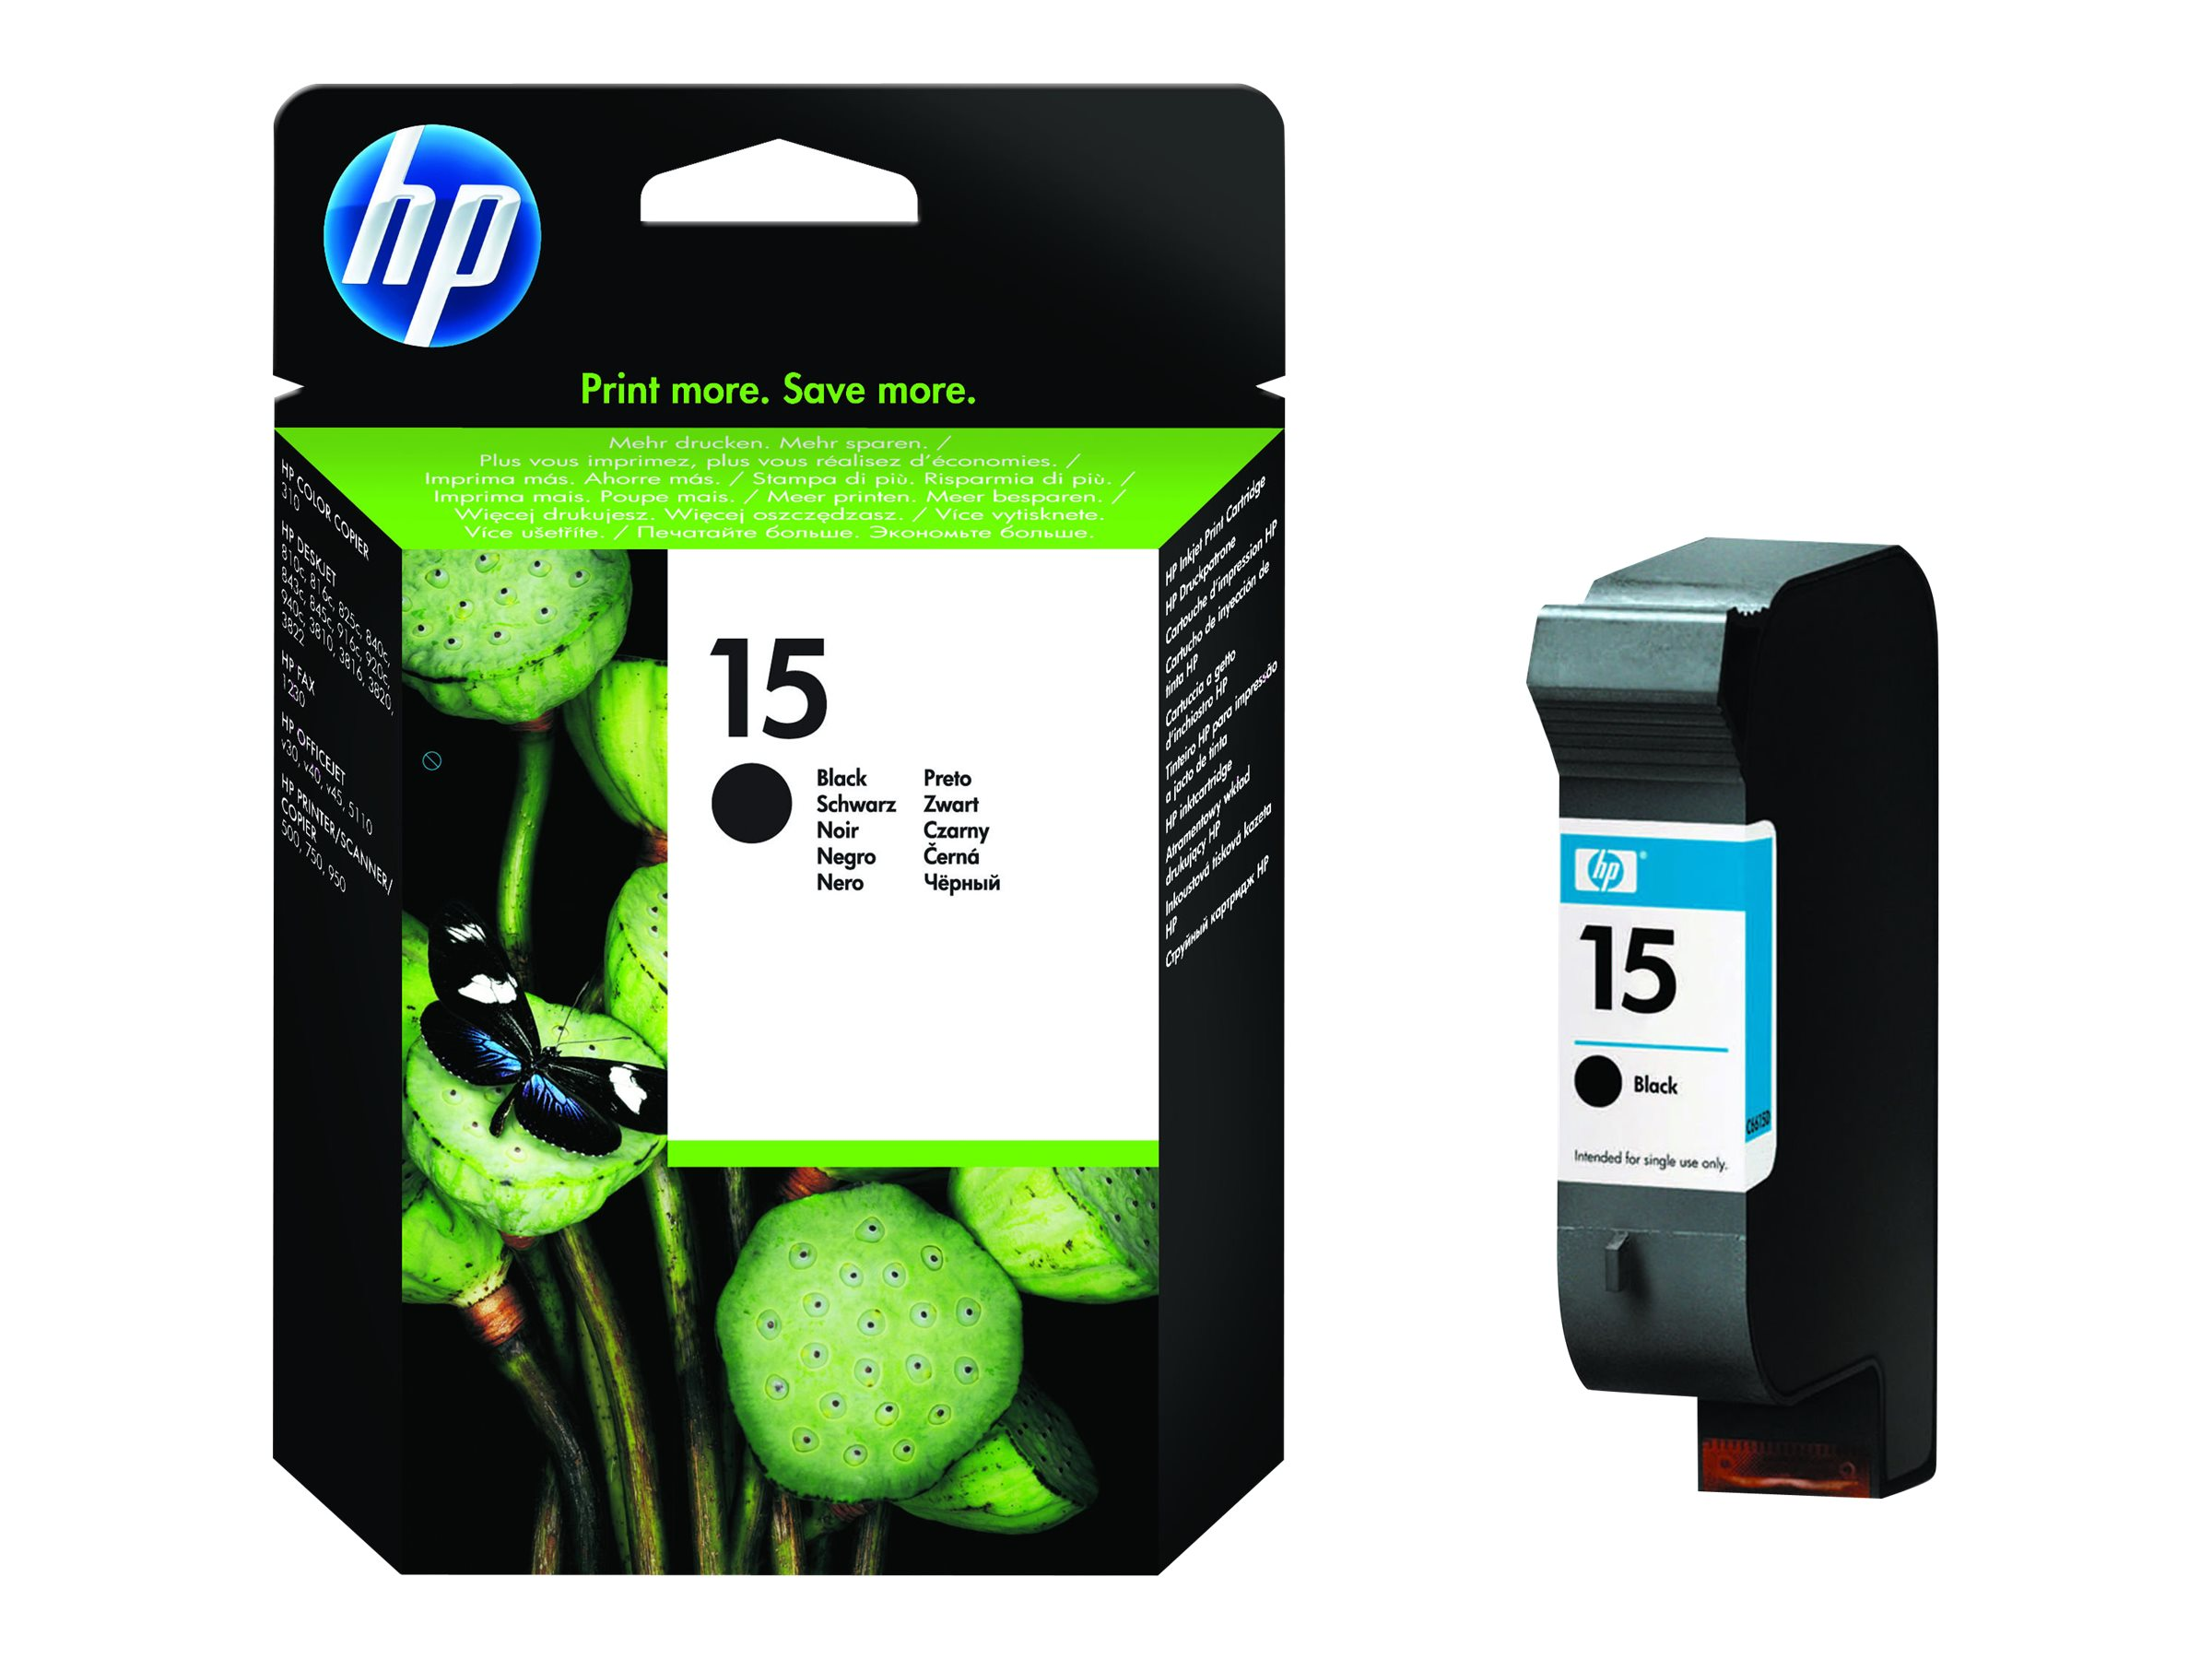 HP 15 - 25 ml - Schwarz - Original - Tintenpatrone - für Deskjet 38XX, 940; Digital Copier 310; Fax 1230; Officejet 5110, v40; psc 500, 750, 950